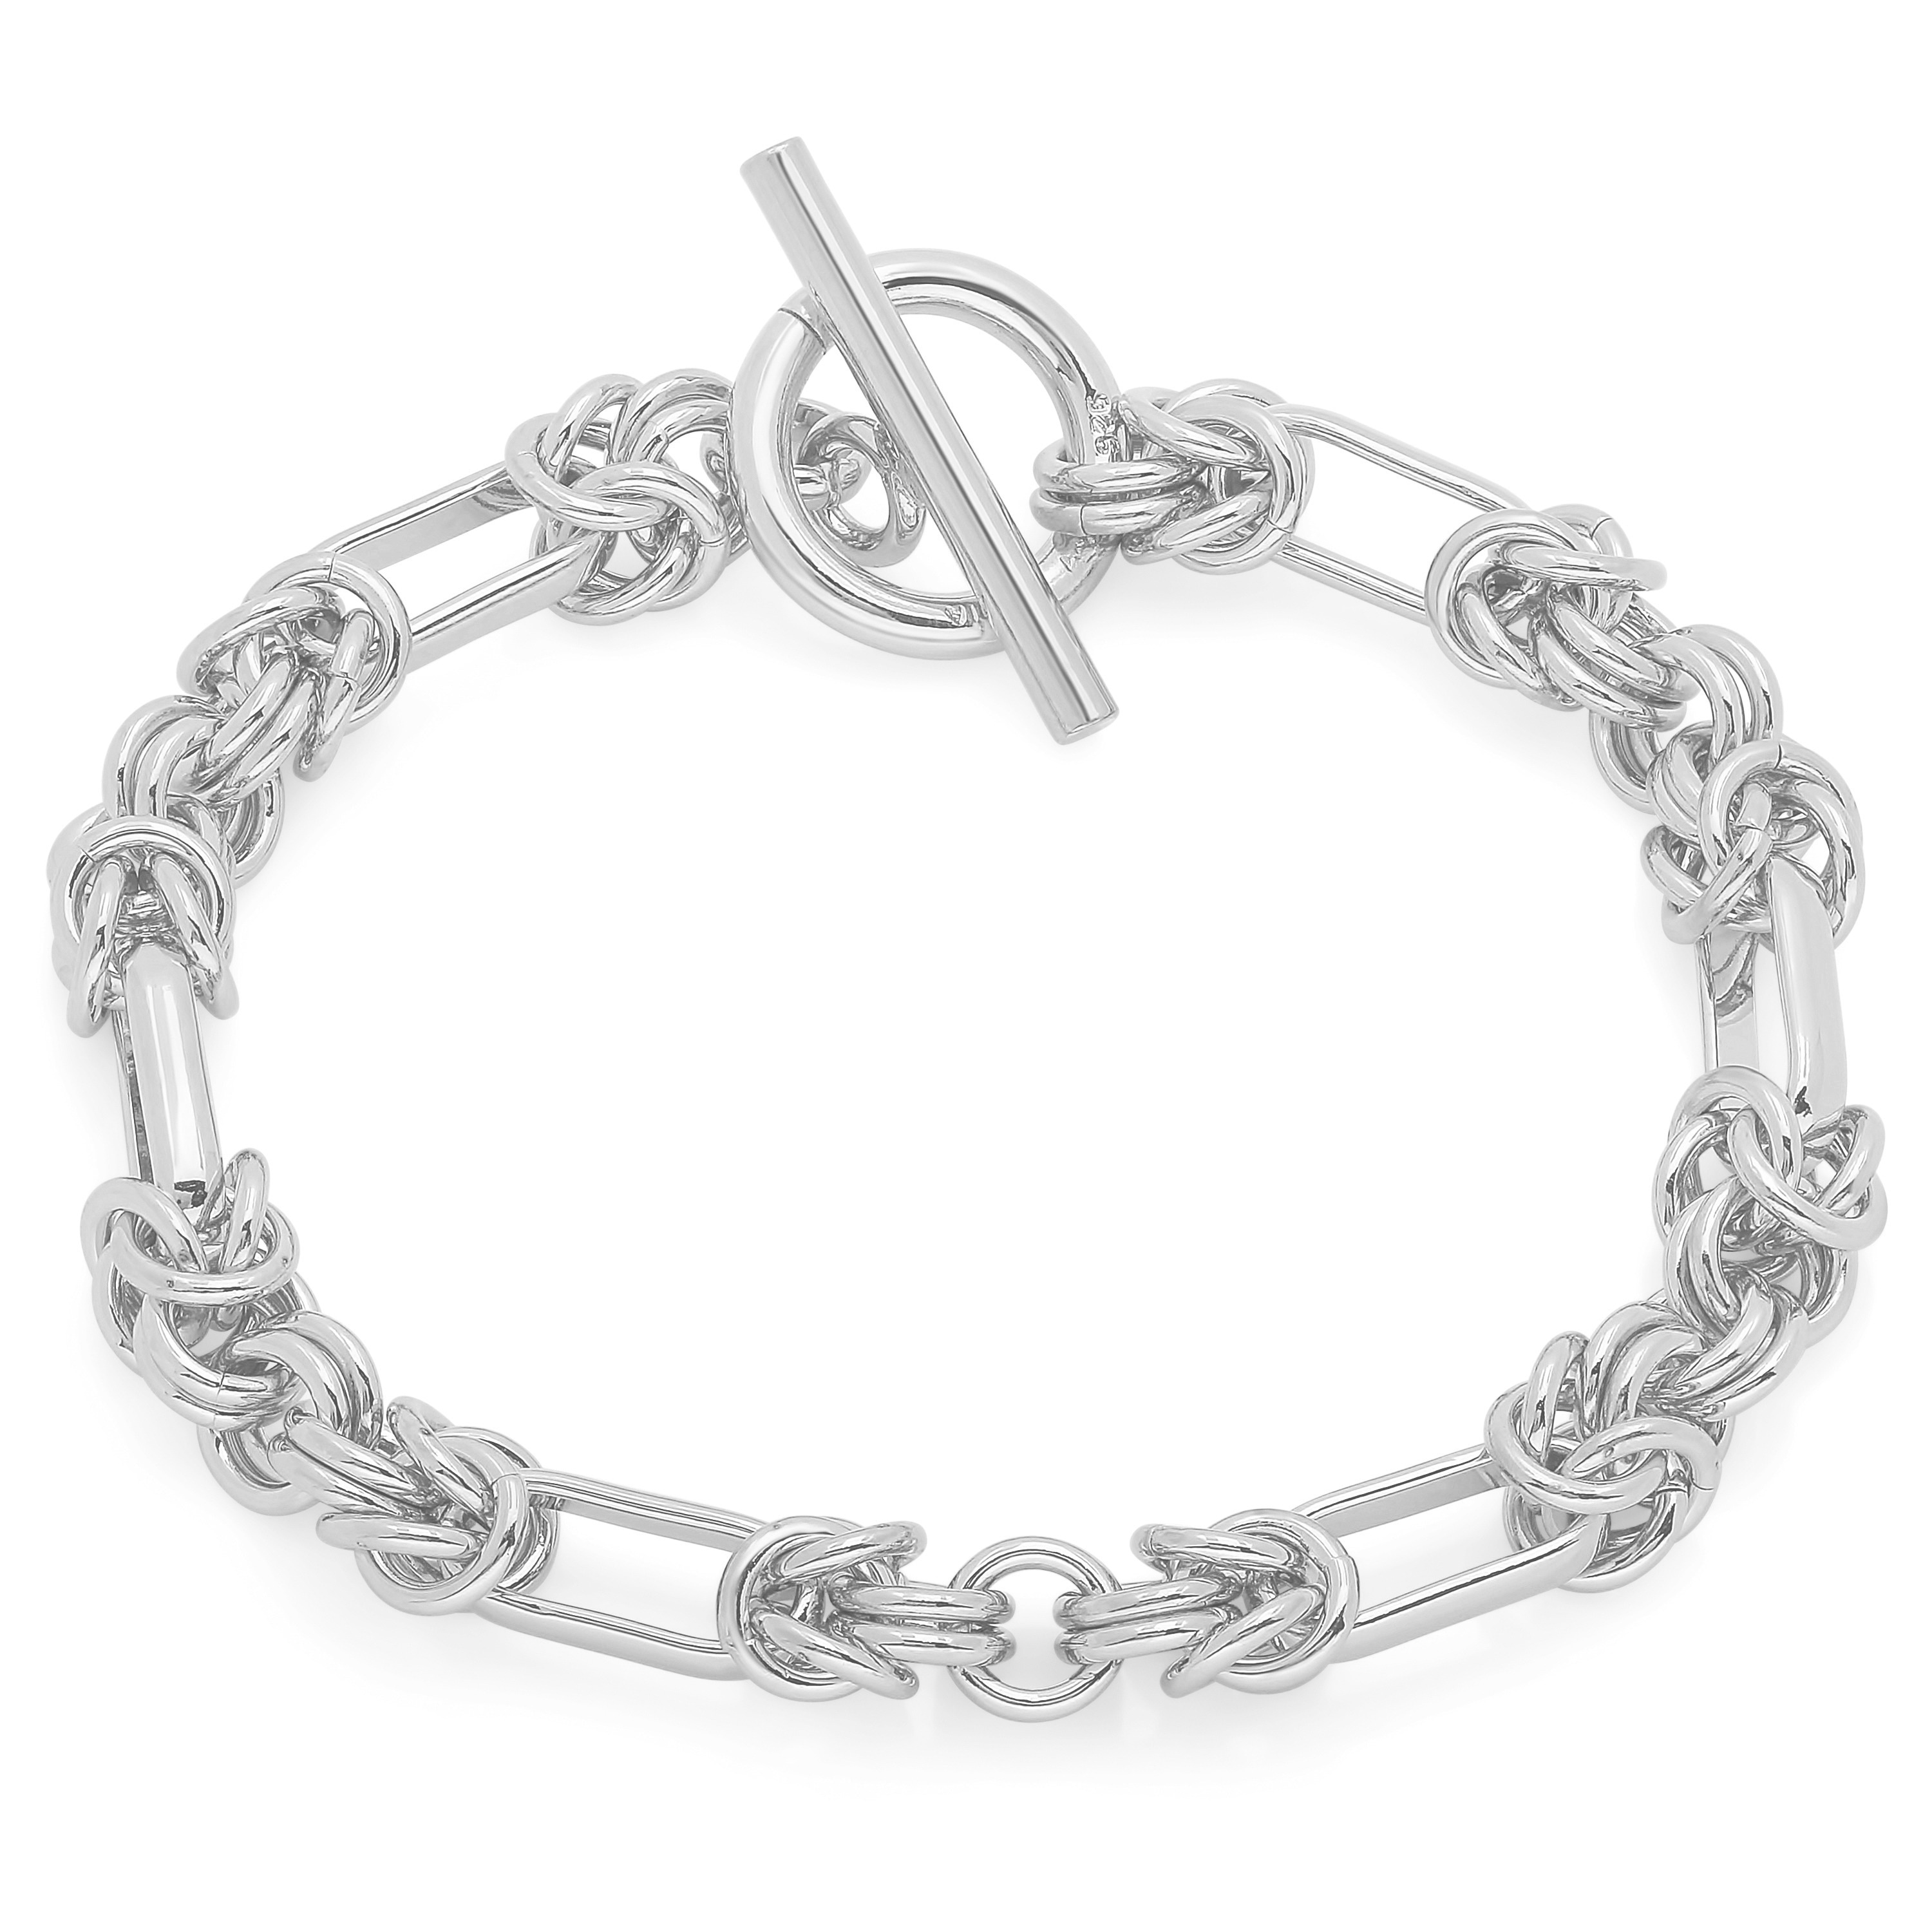 Sterling Silver 7.5-inch Handmade Link Bracelet with Togg...